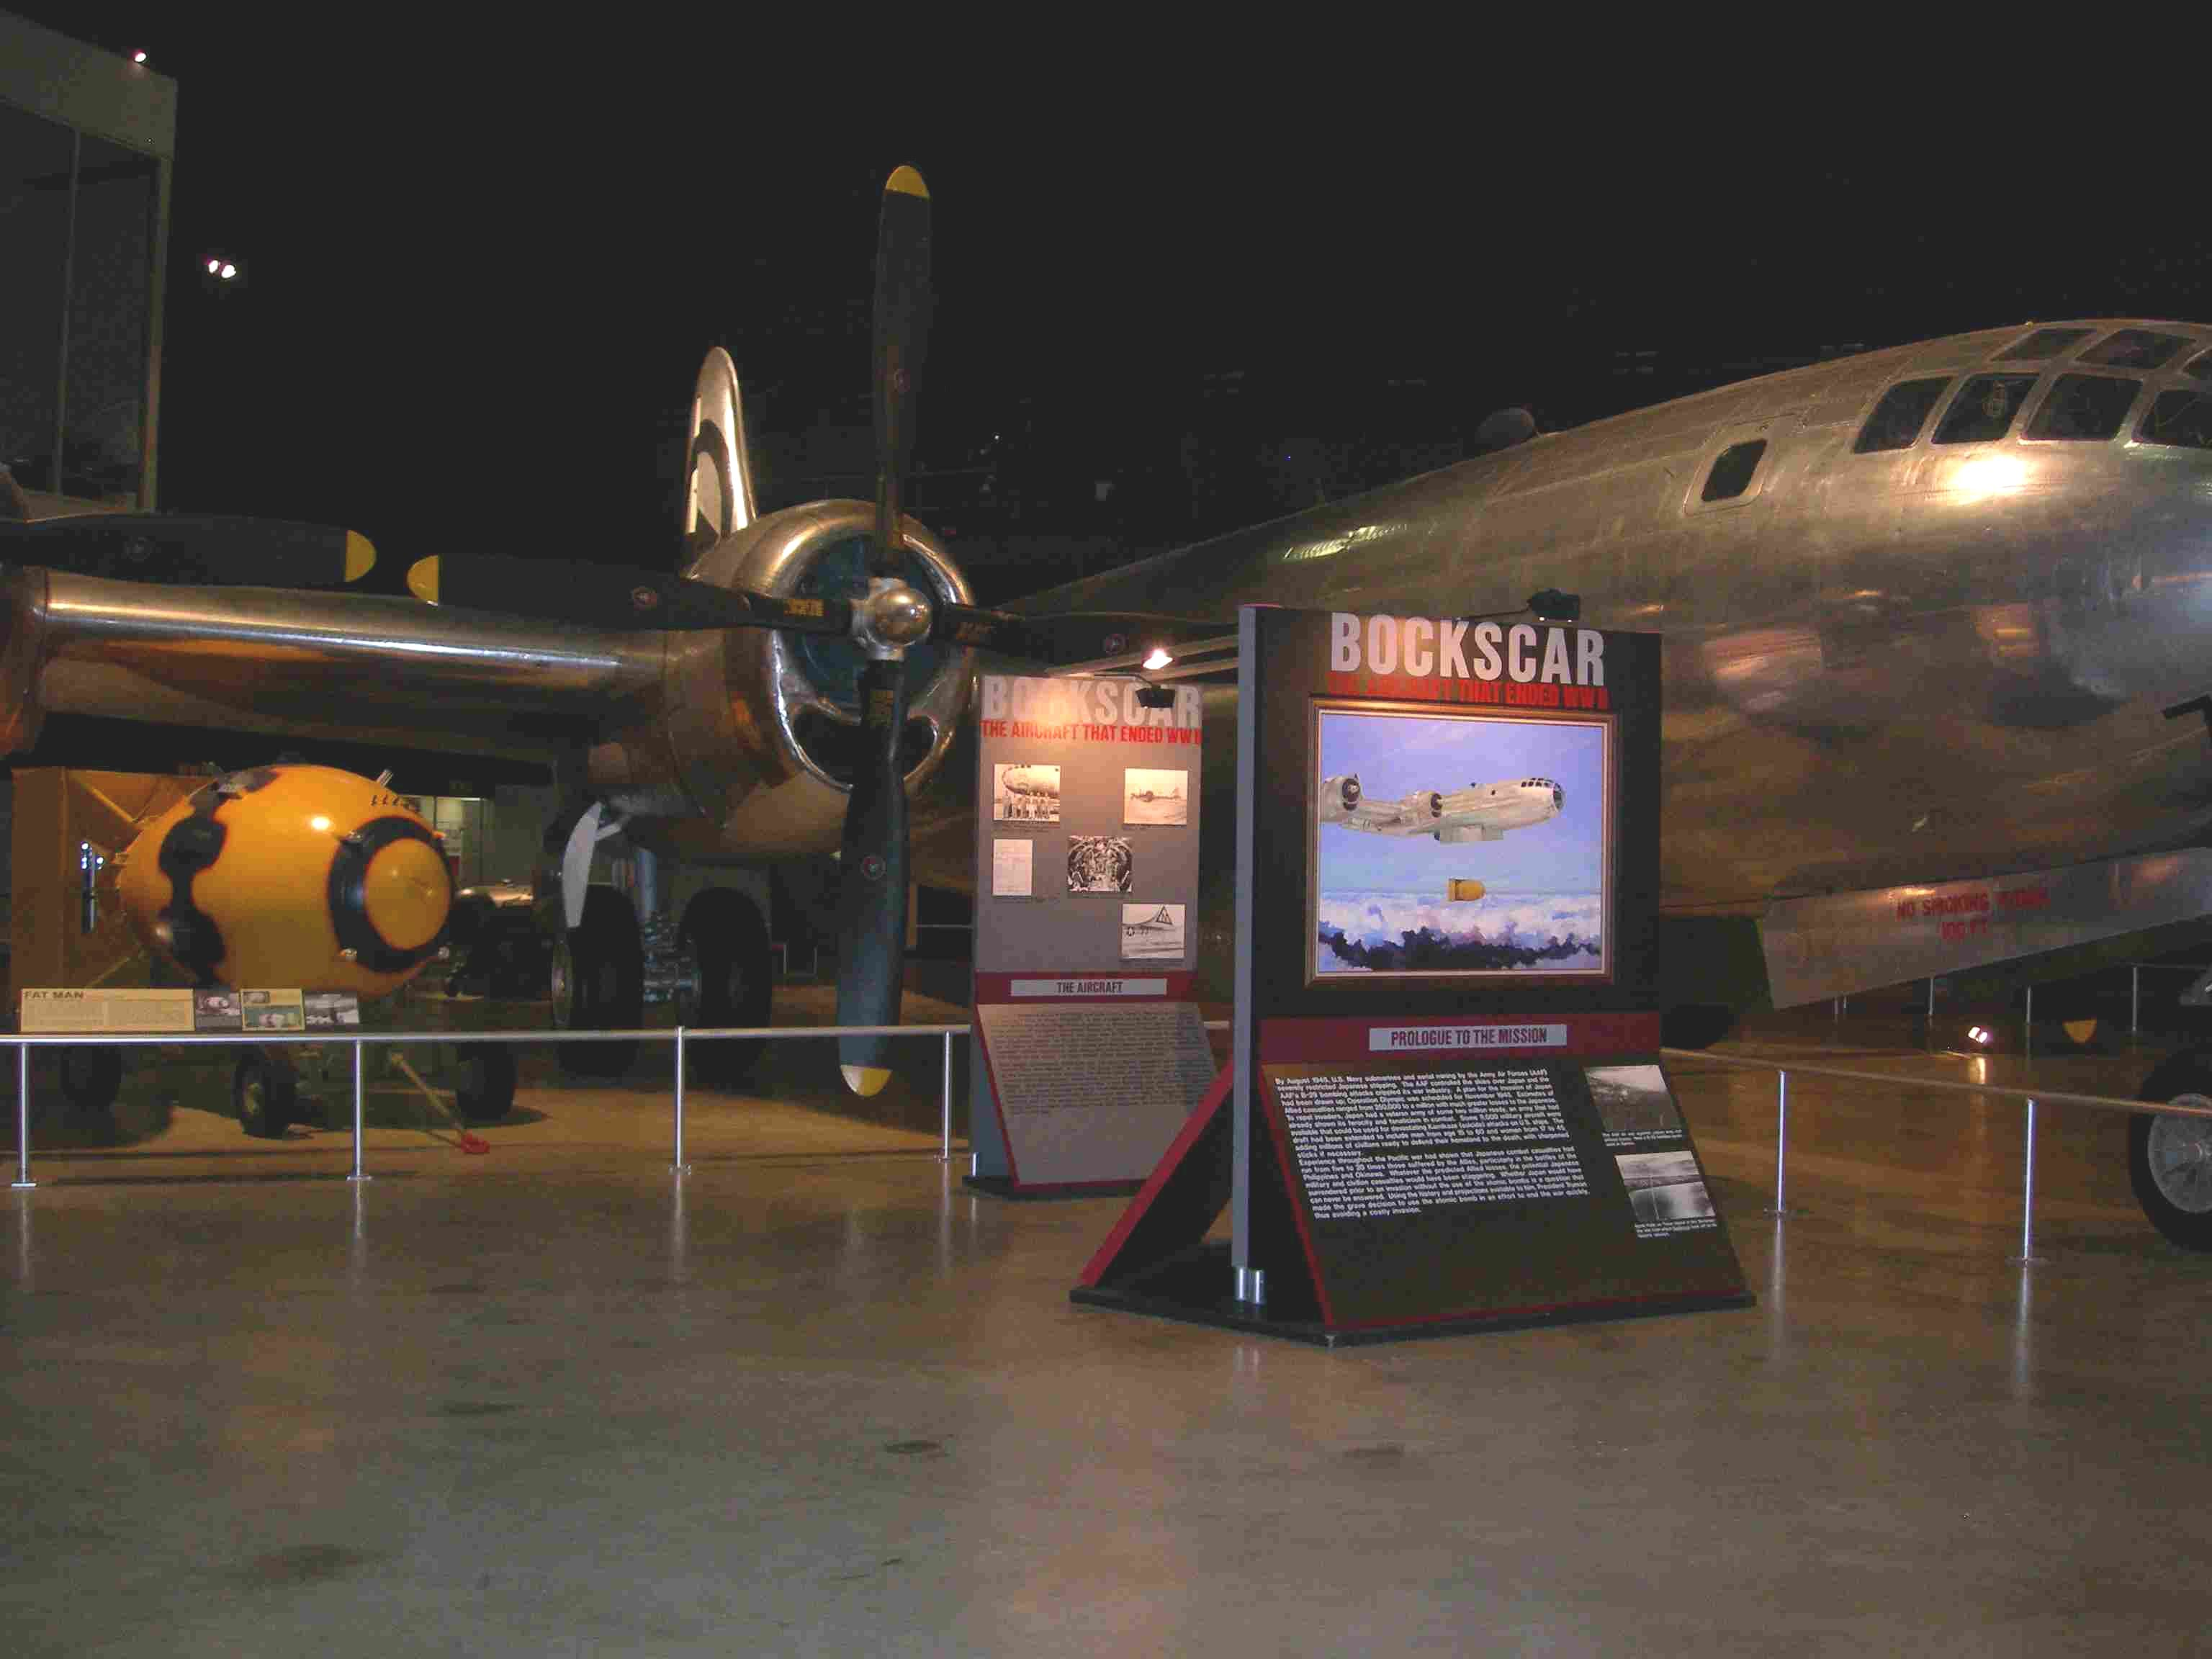 Bockscar and a replica of Fat Man on display at the museum